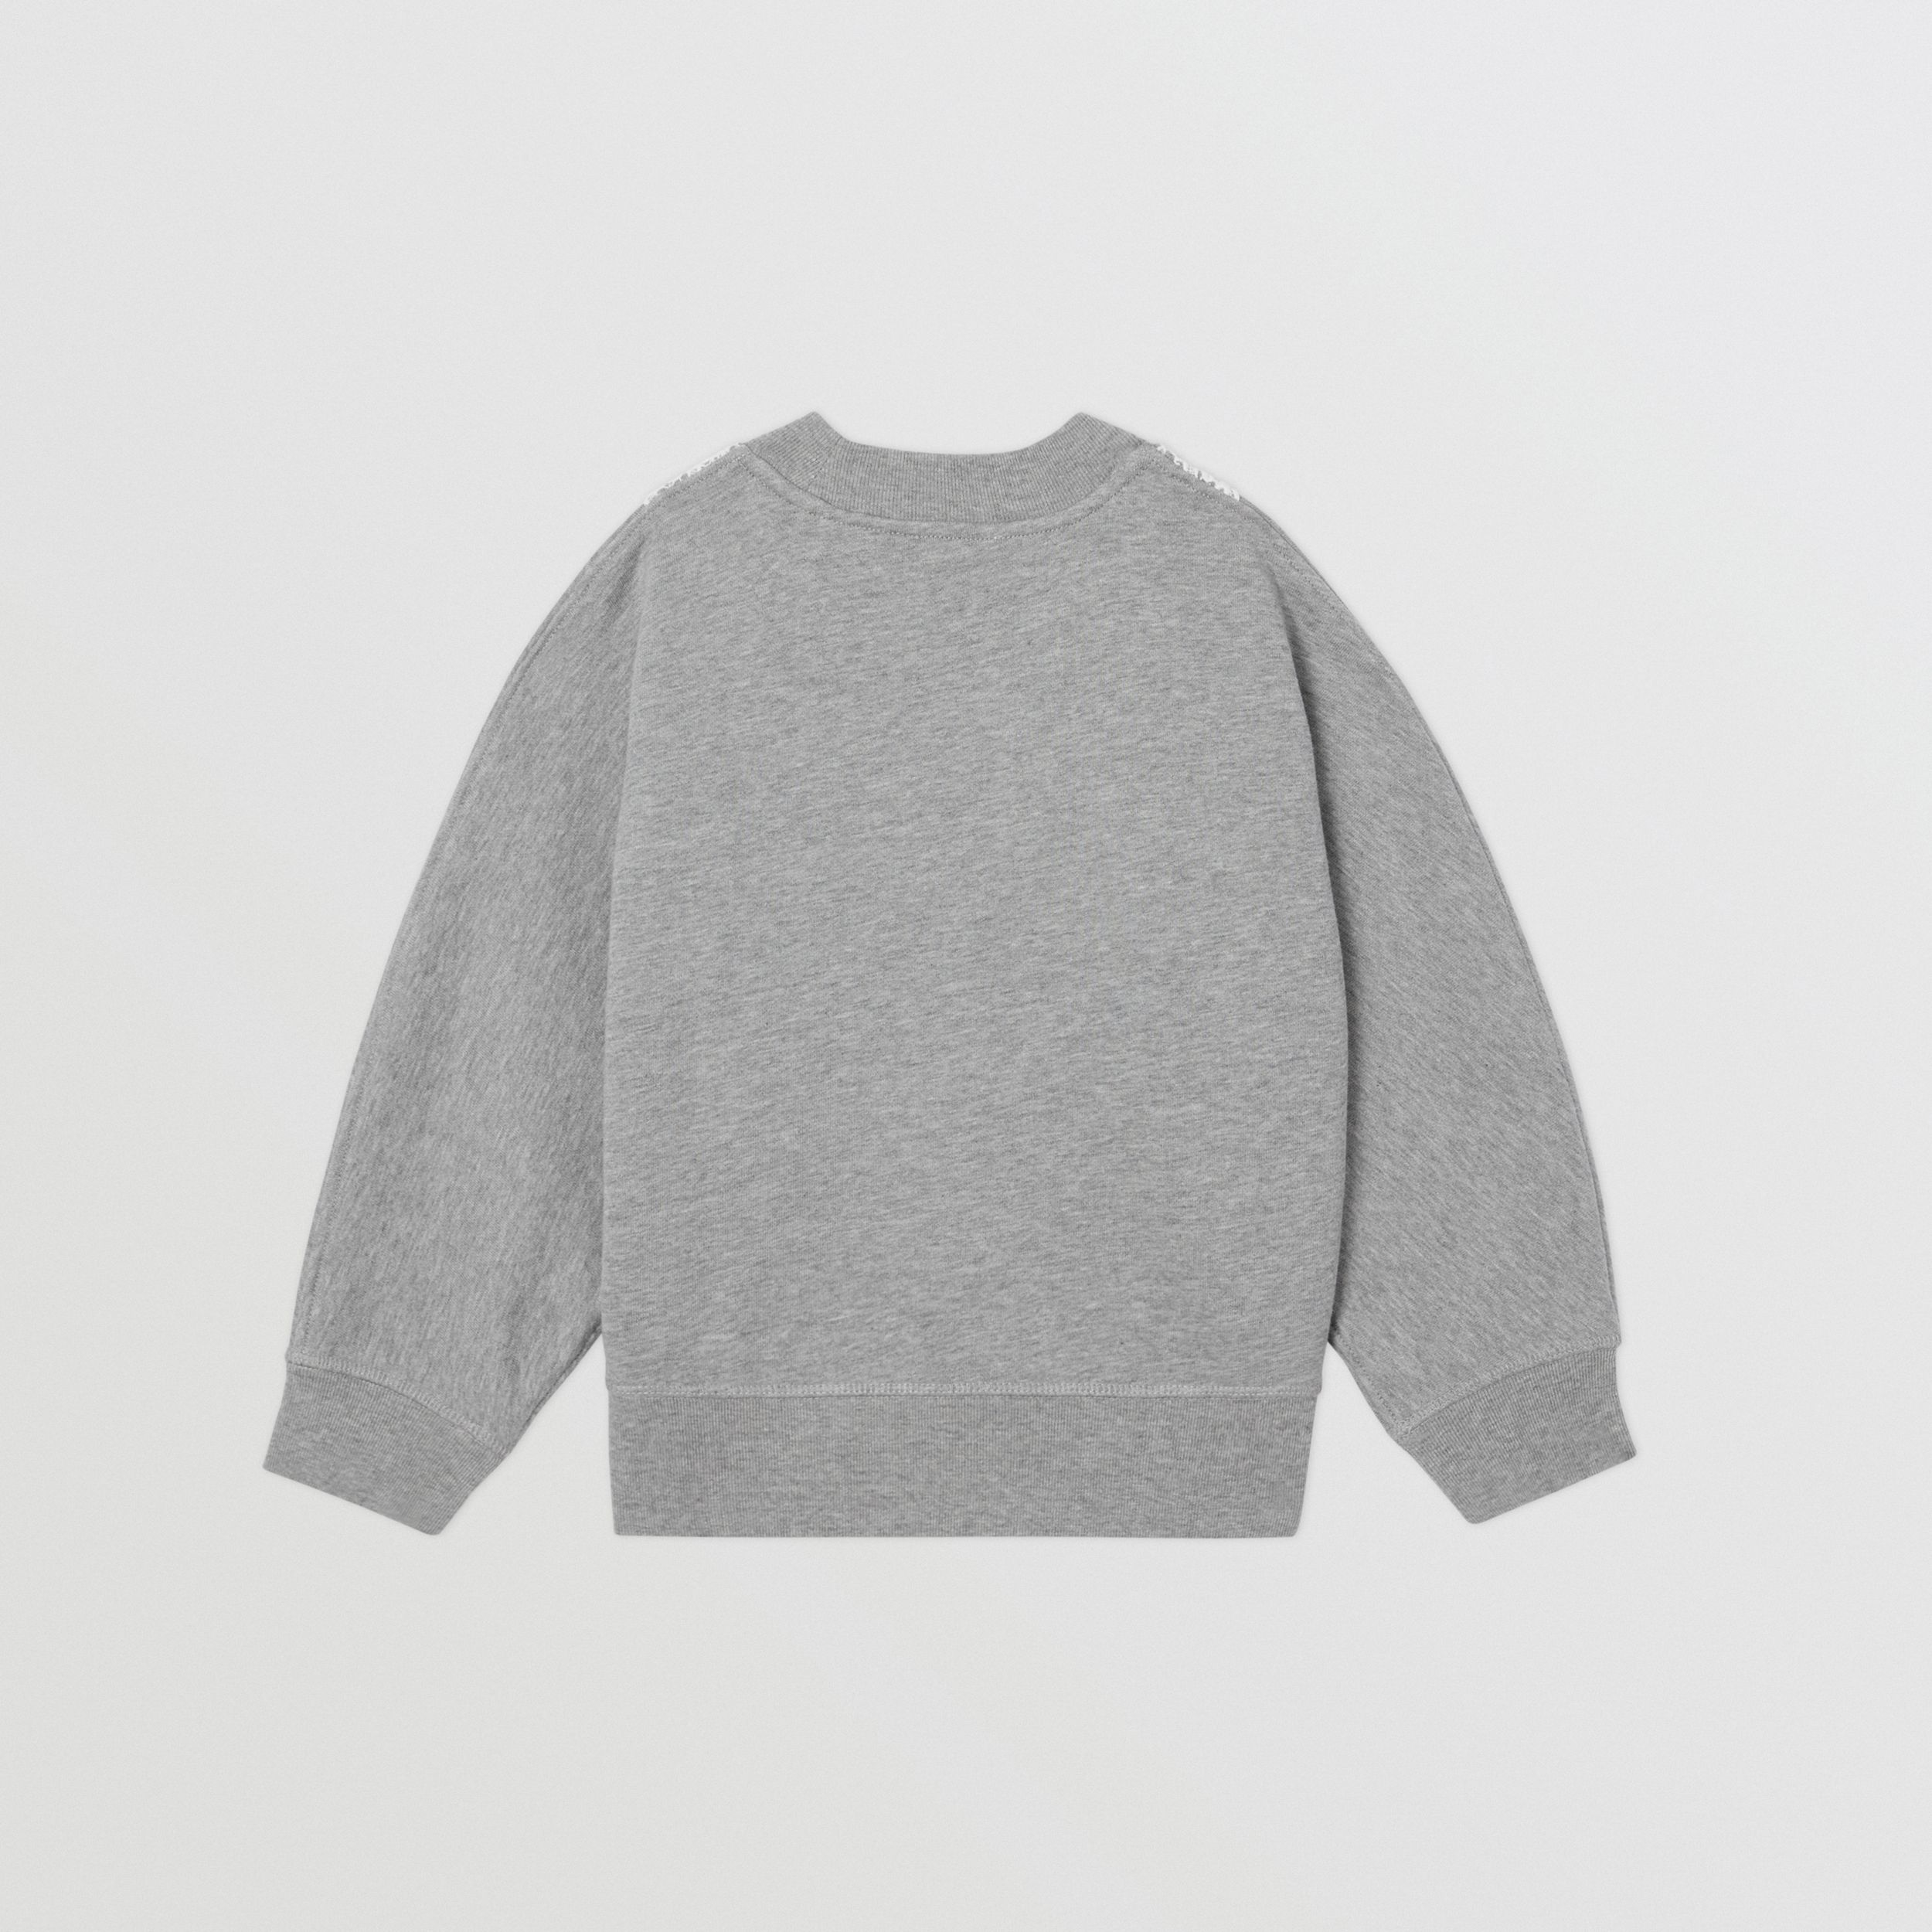 Logo Embroidered Lace Panel Cotton Sweatshirt in Grey Melange | Burberry - 4